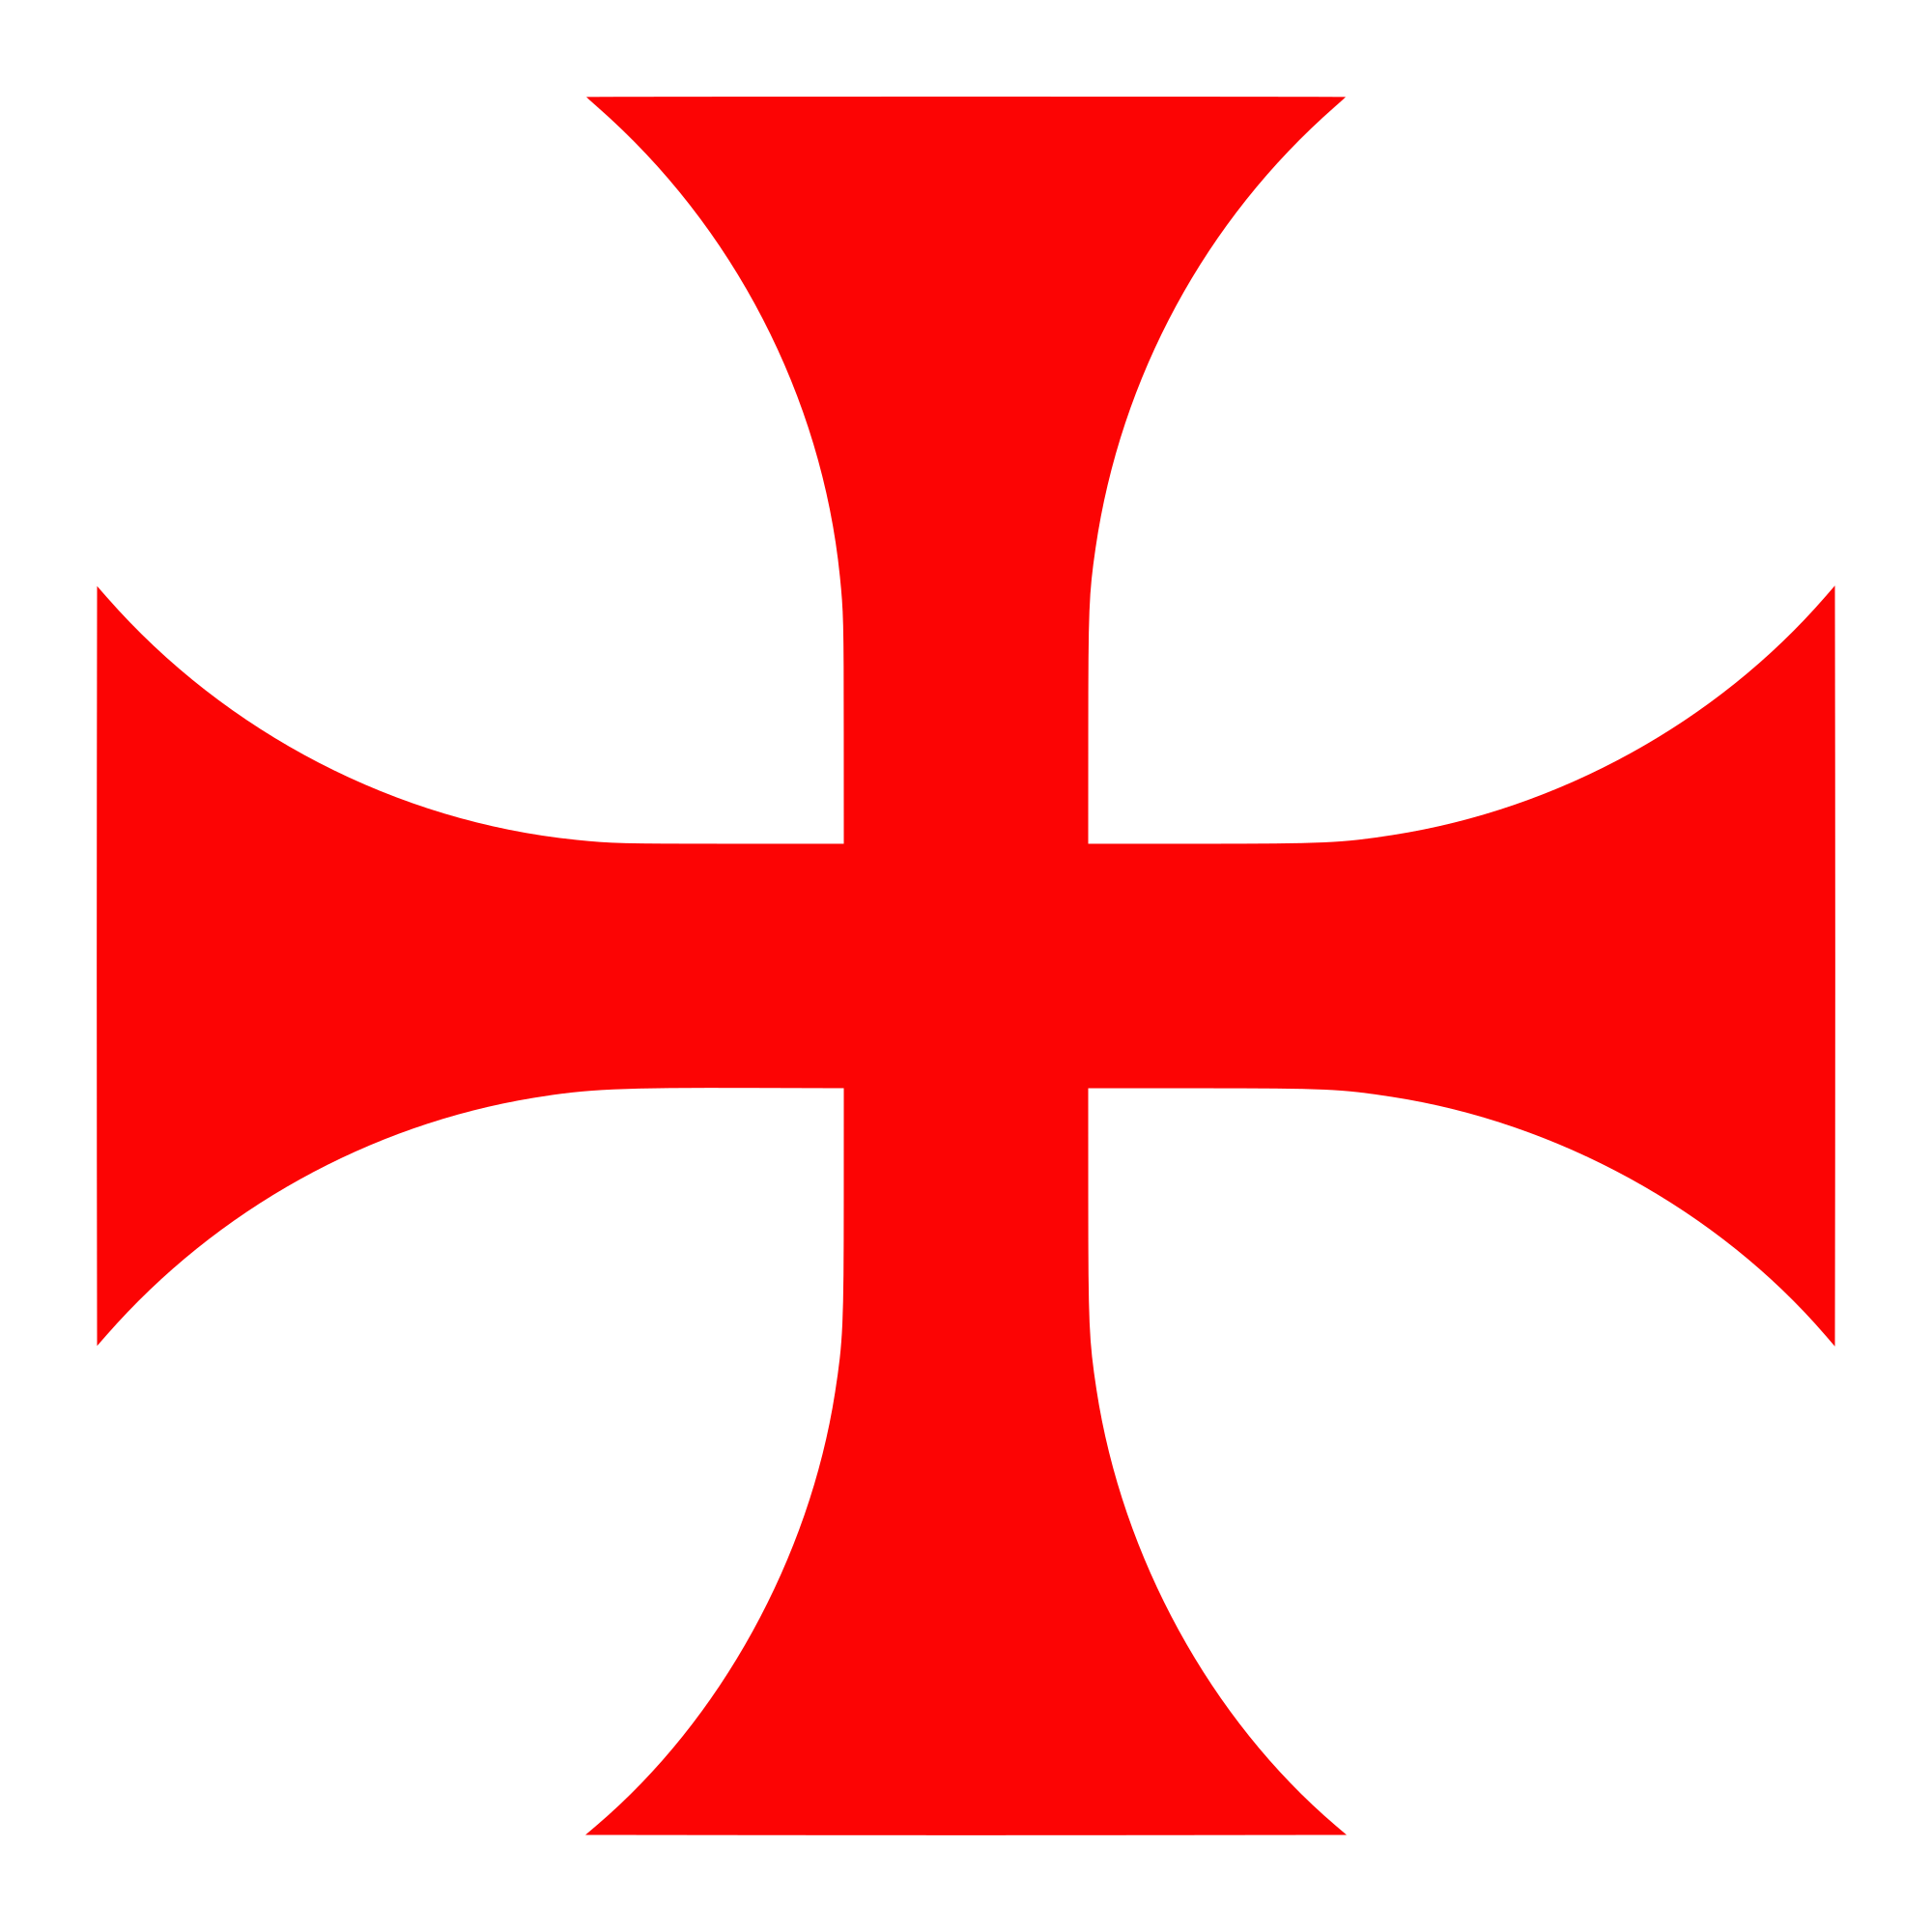 Templars - The Assassin's Creed Wiki - Assassin's Creed ...